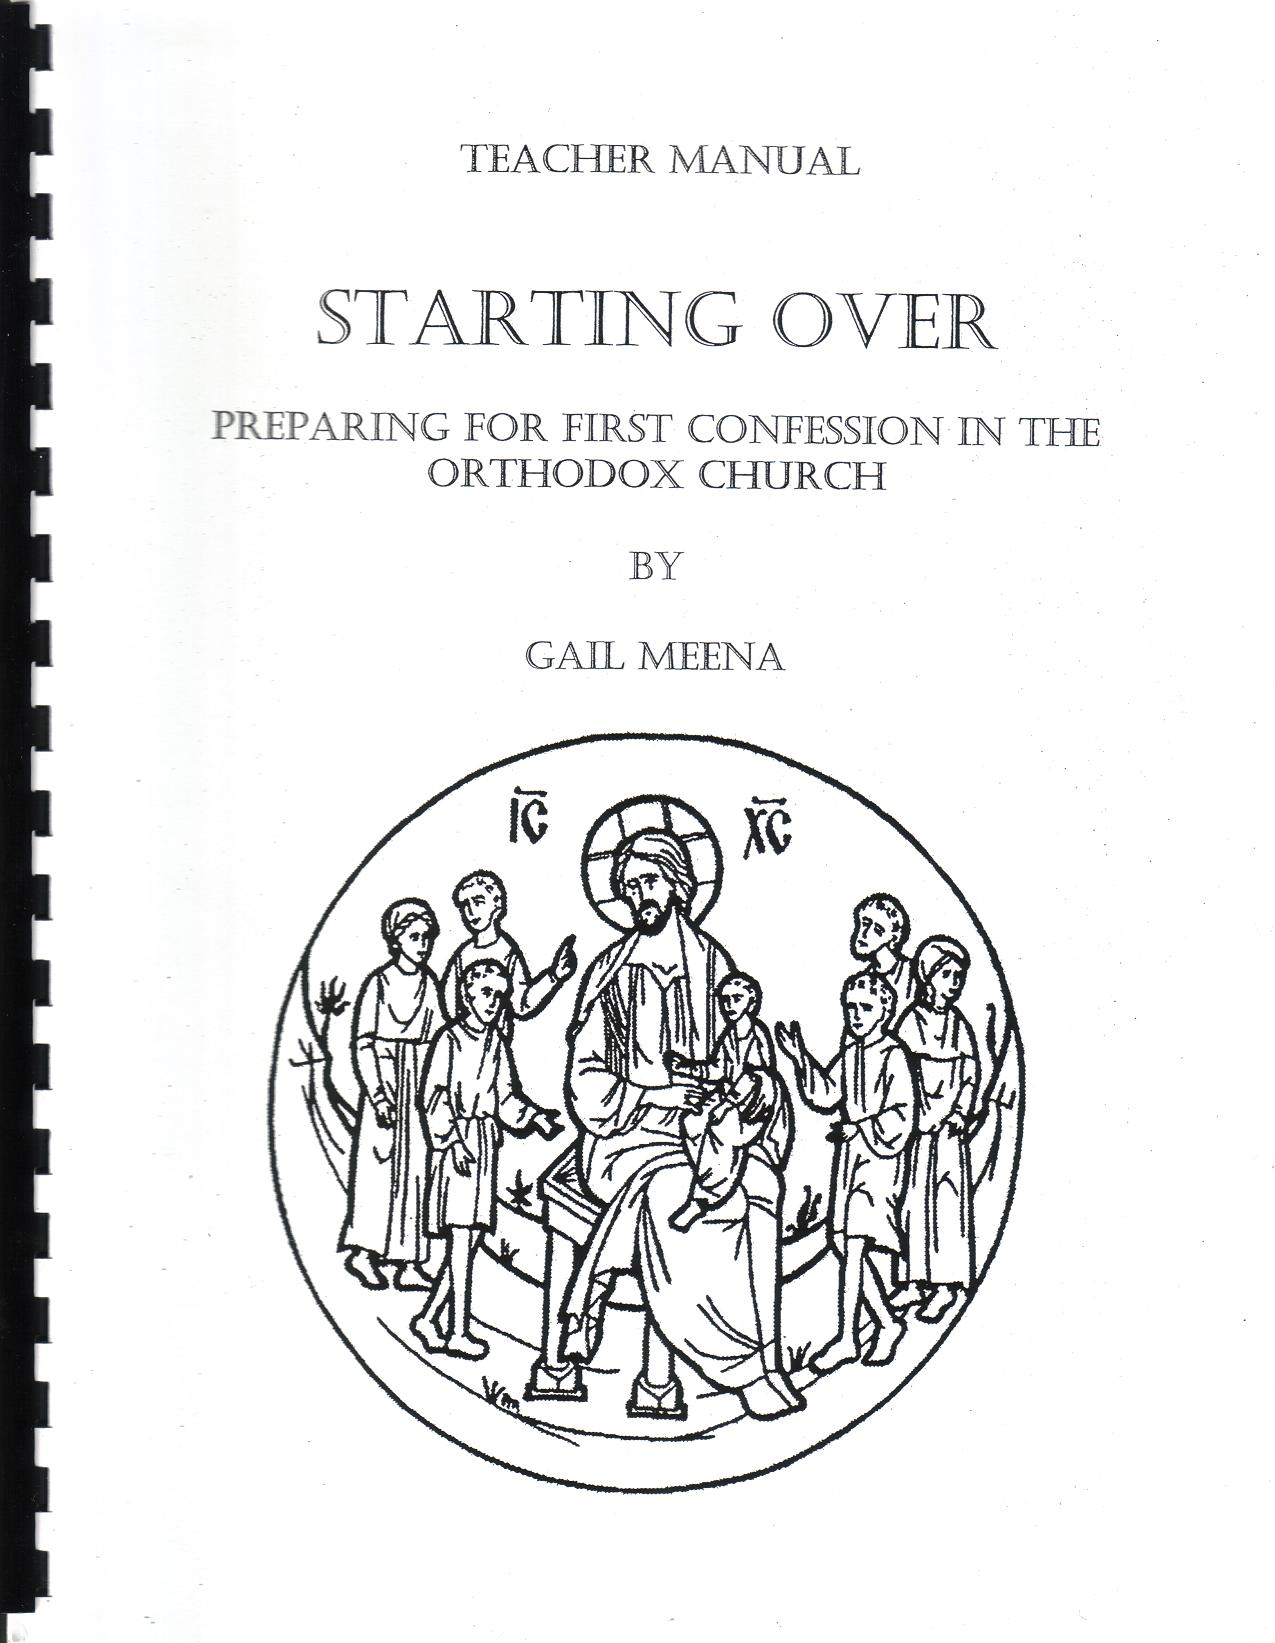 Starting Over - Teacher Manual